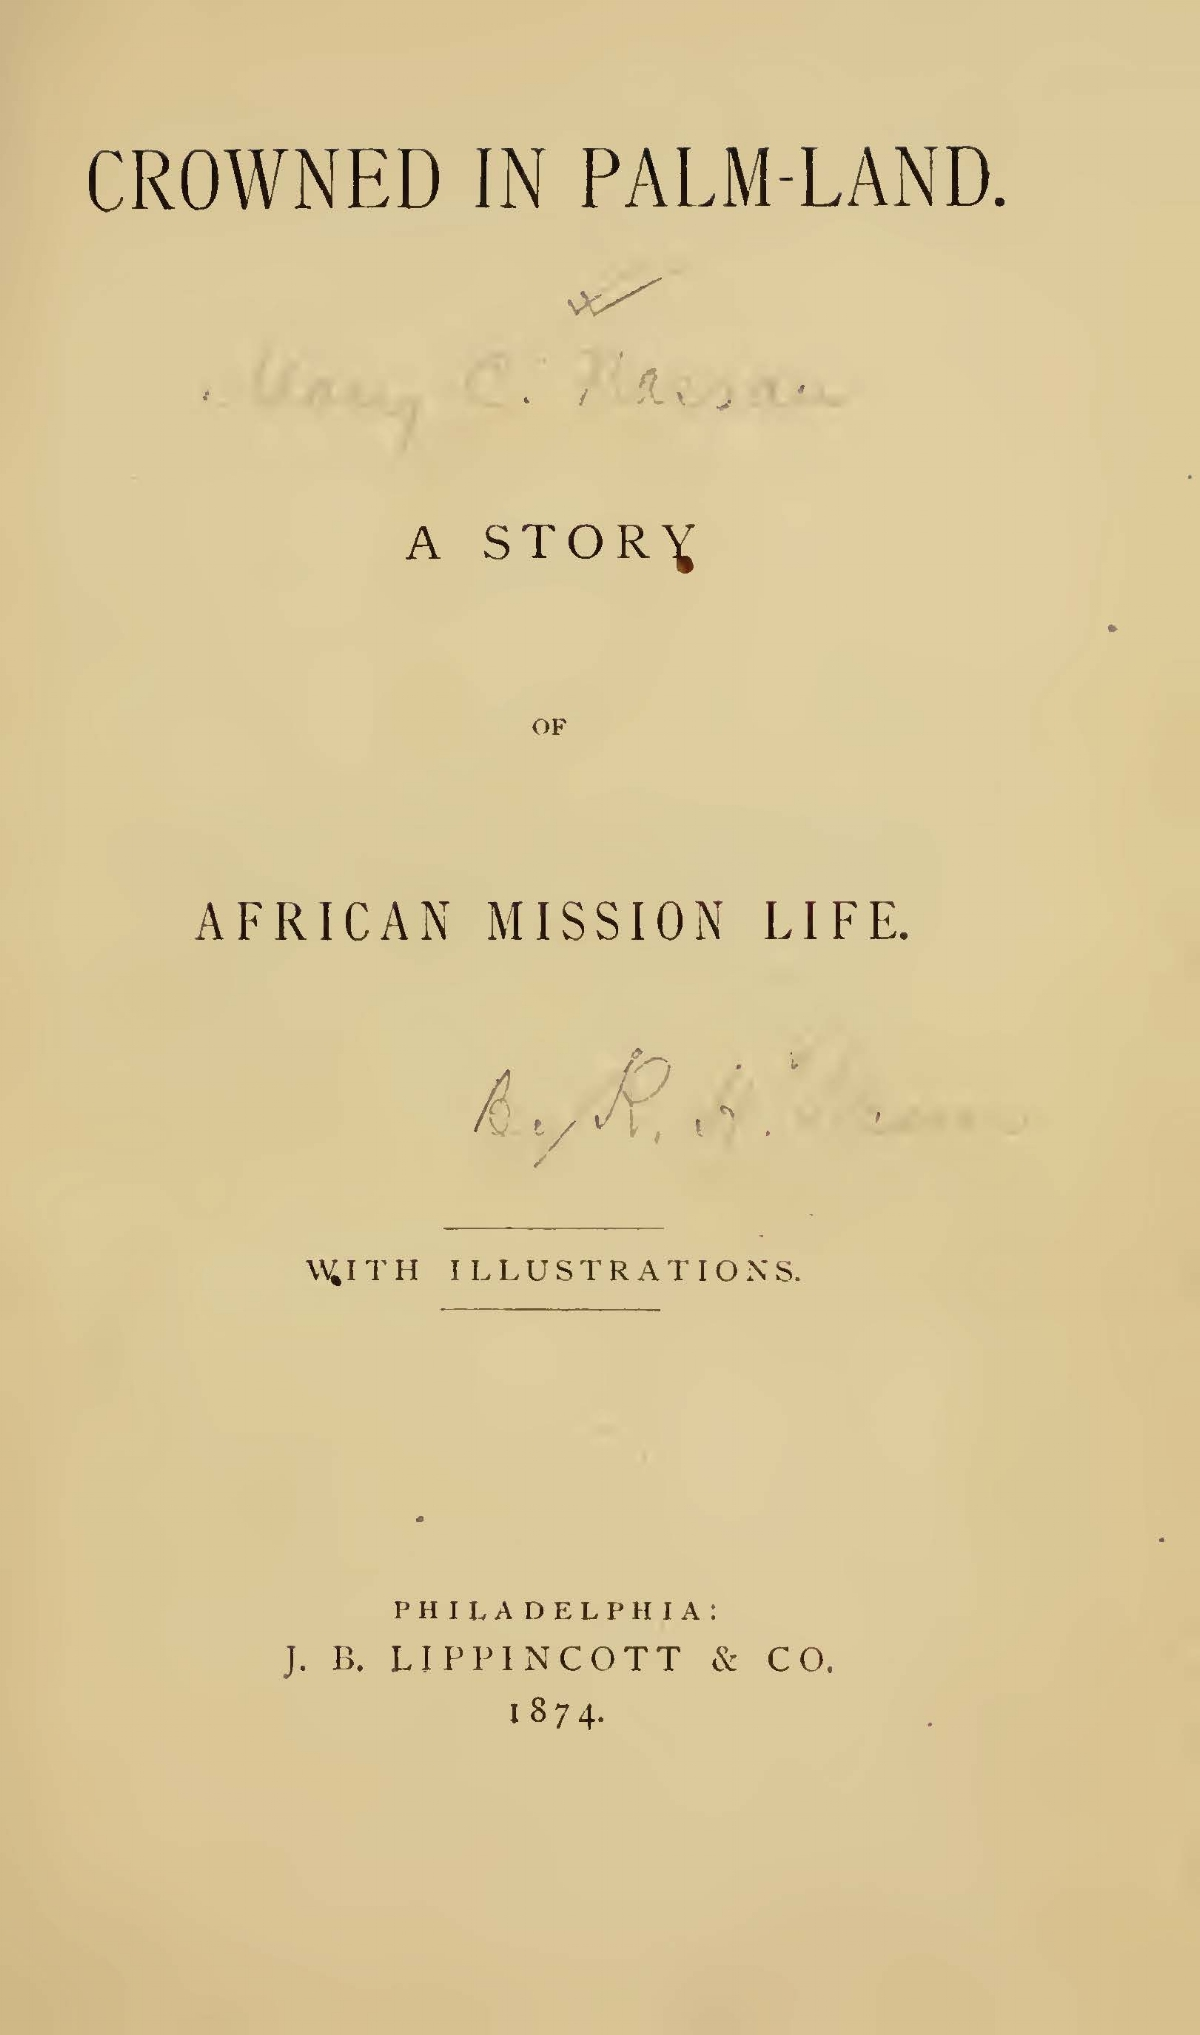 Nassau, Robert Hamill, Crowned in Palm-Land A Story of African Mission Life Title Page.jpg